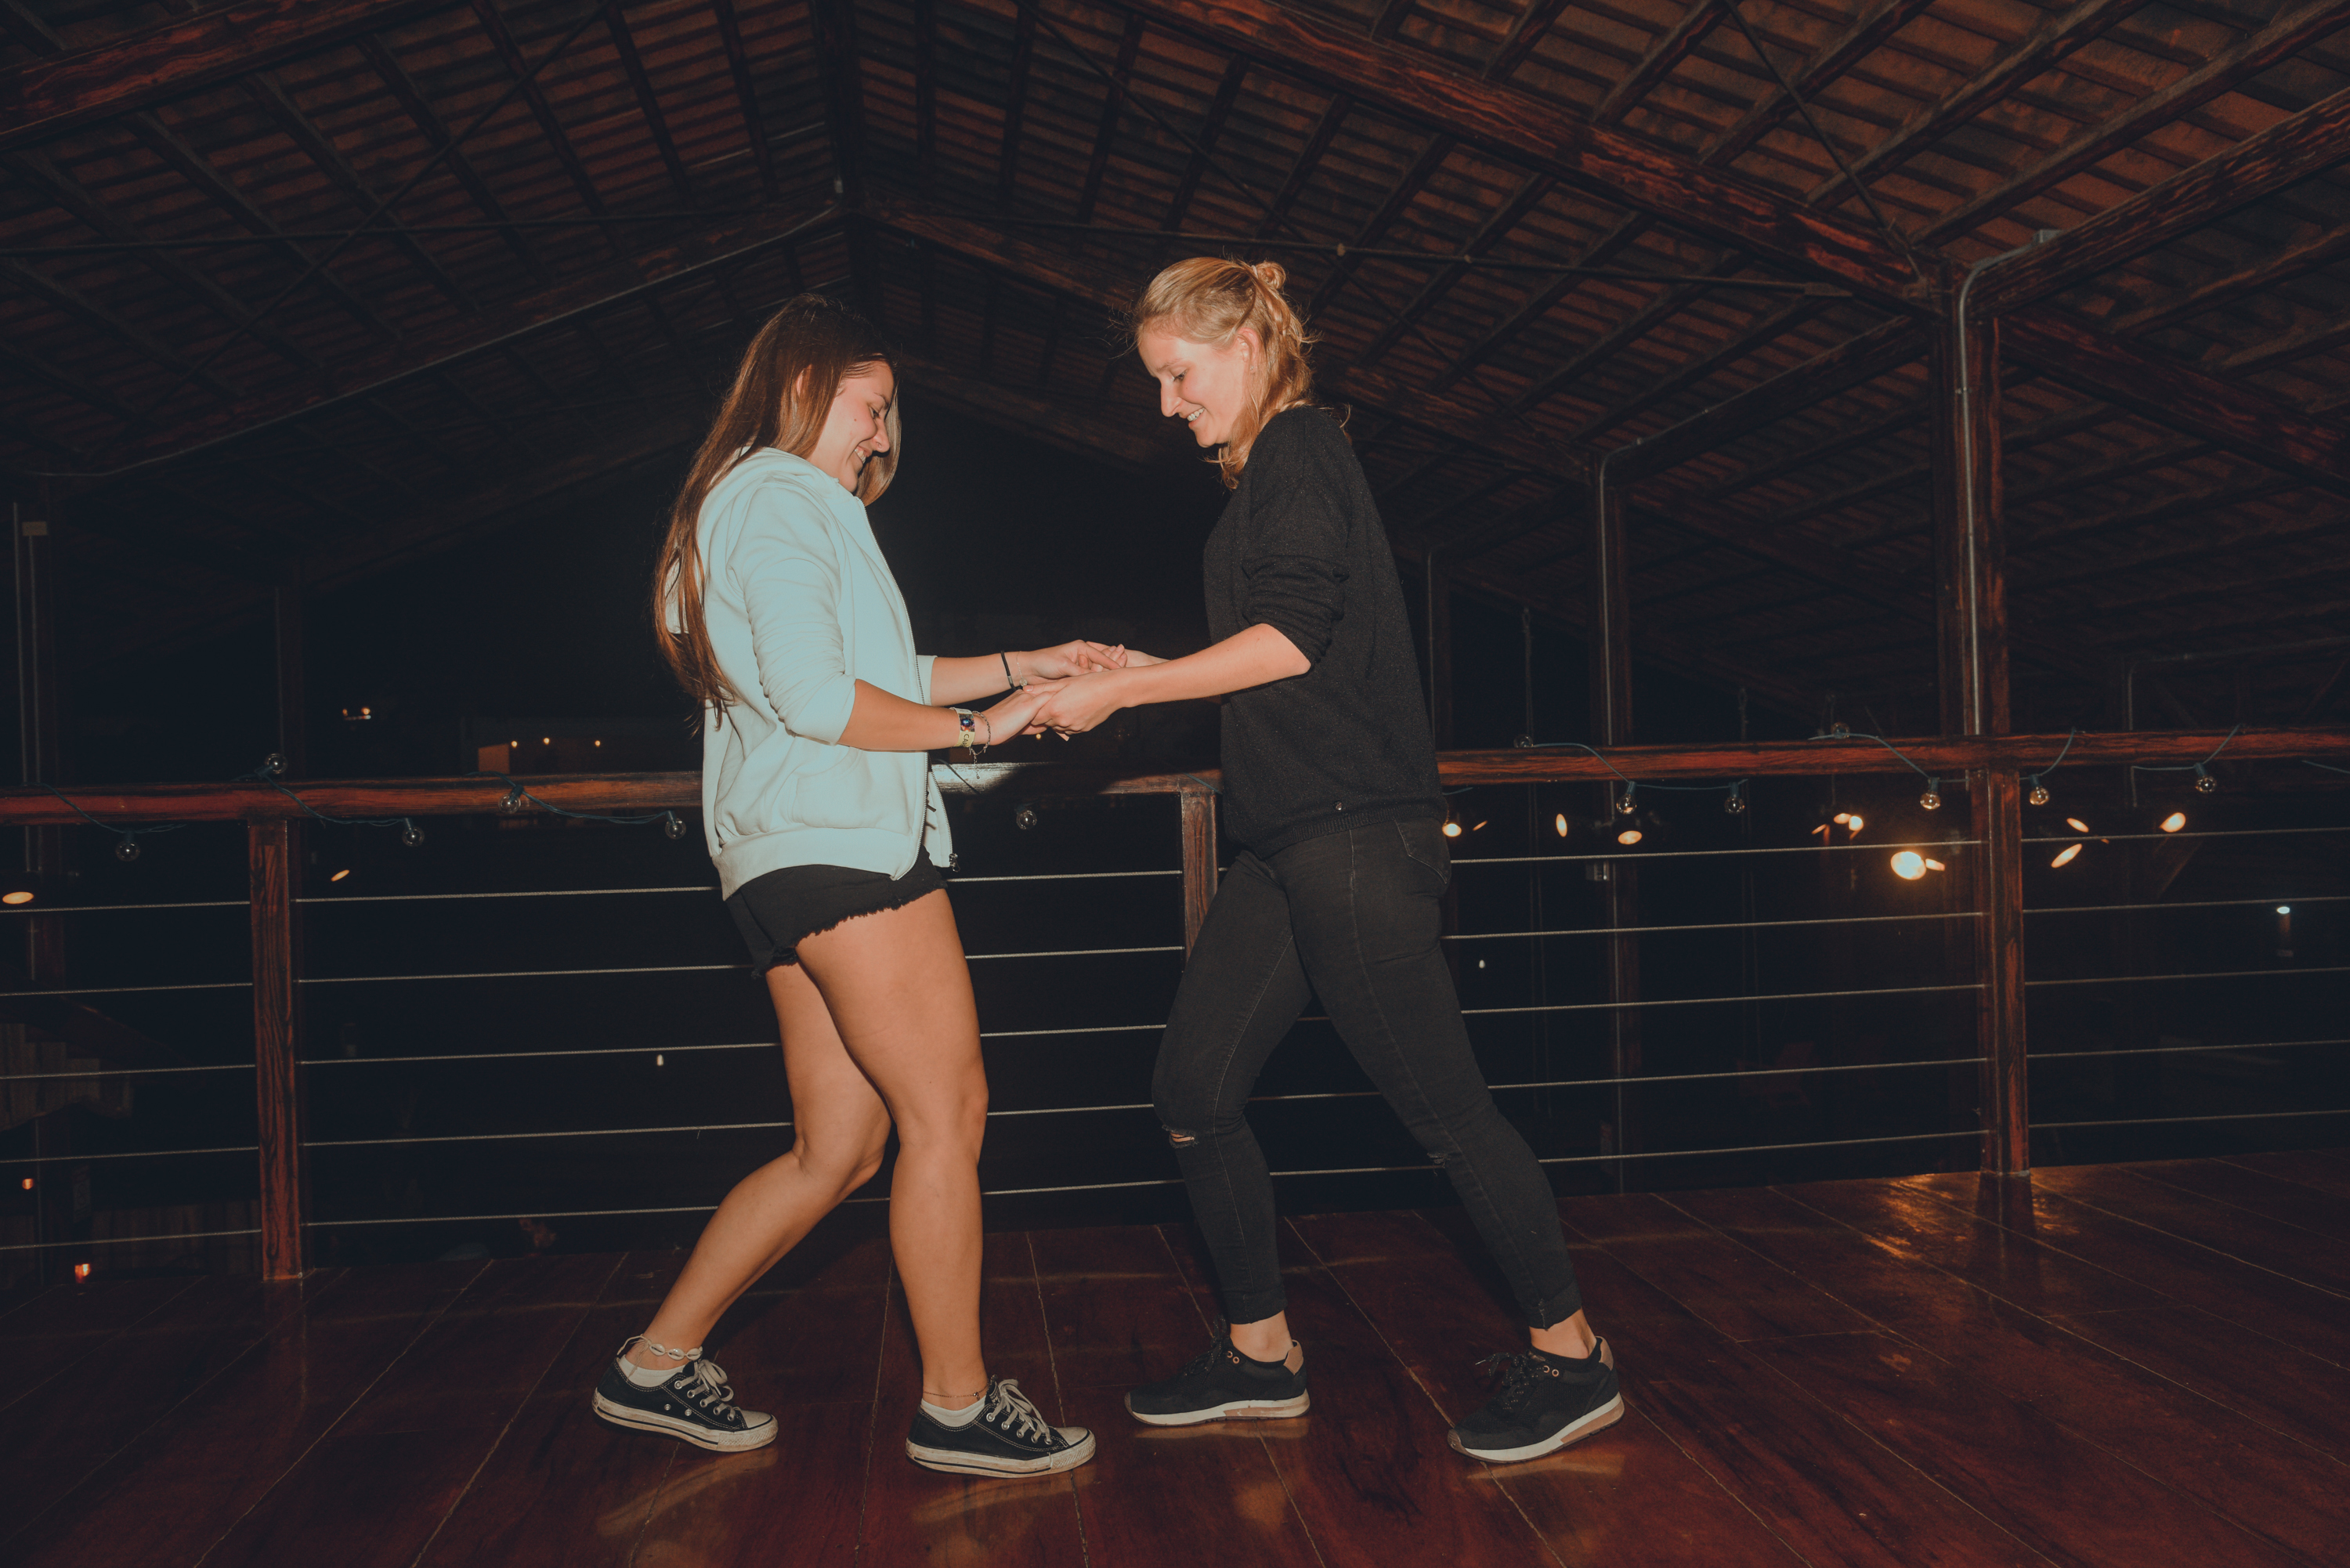 Group Dance Lessons in Costa Rica!